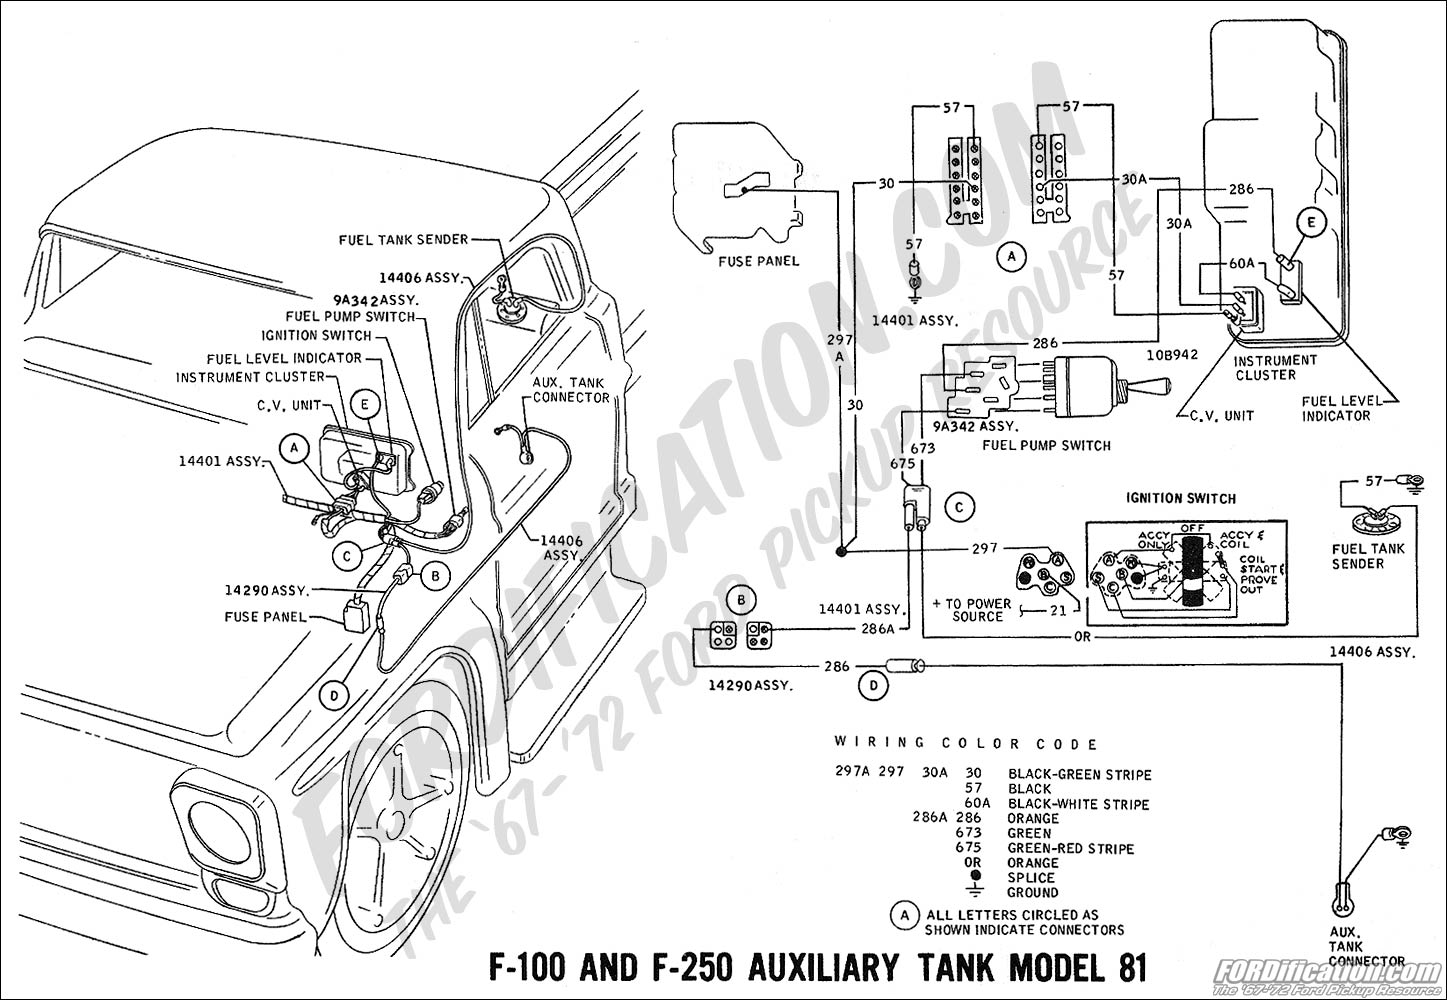 ford truck technical drawings and schematics section h 2005 Buick  Rendezvous Wiring-Diagram 2002 Buick